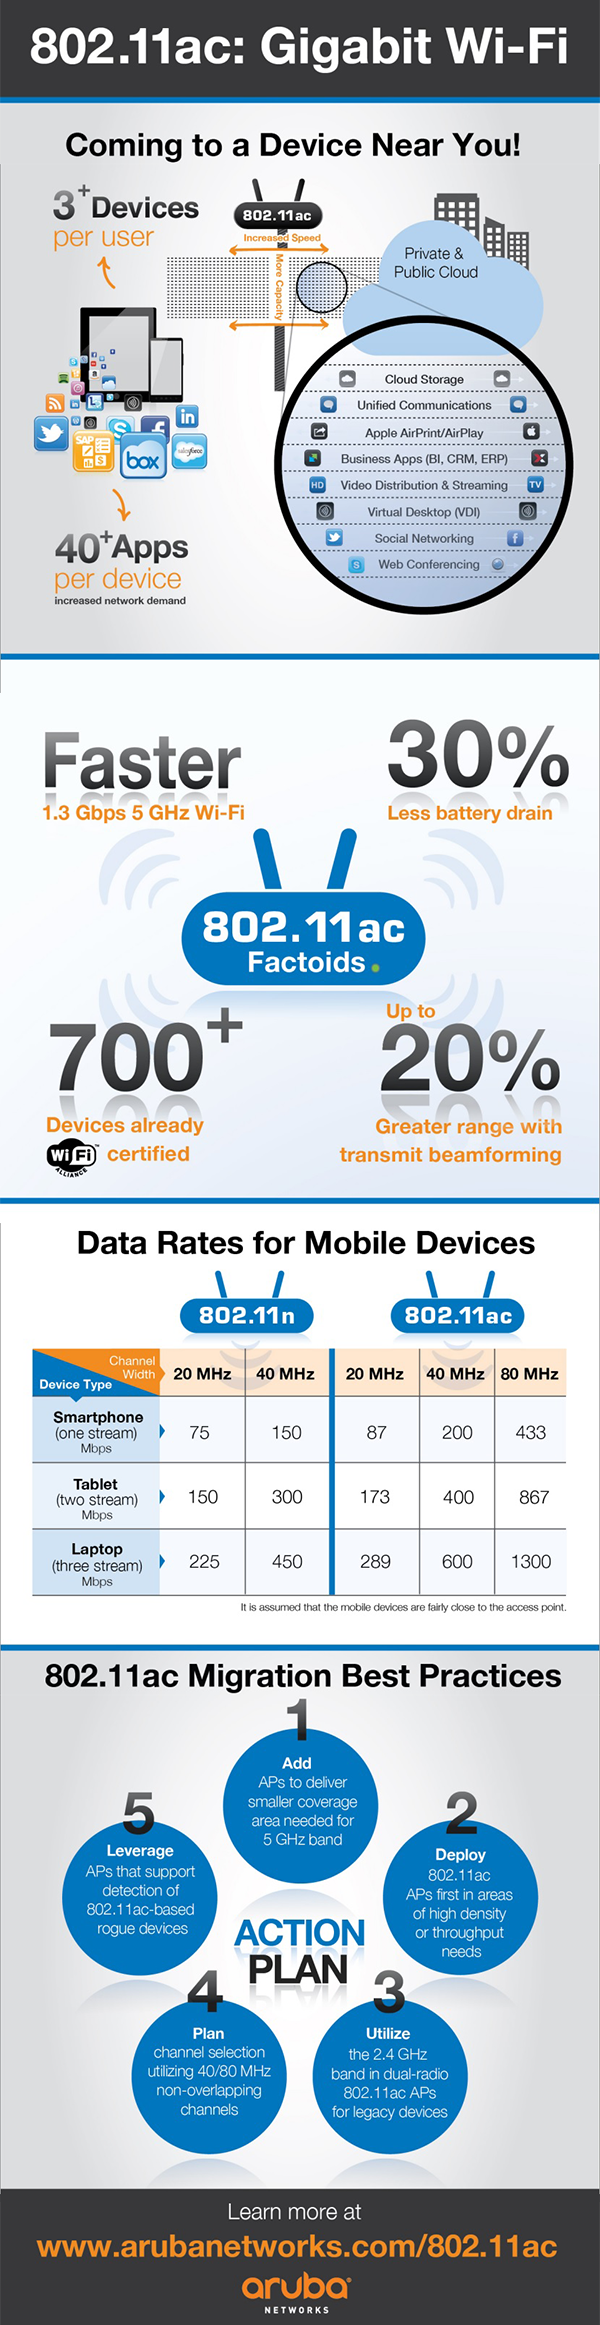 aruba networks 802.11ac infographic for school wireless networks, wifi service providers,